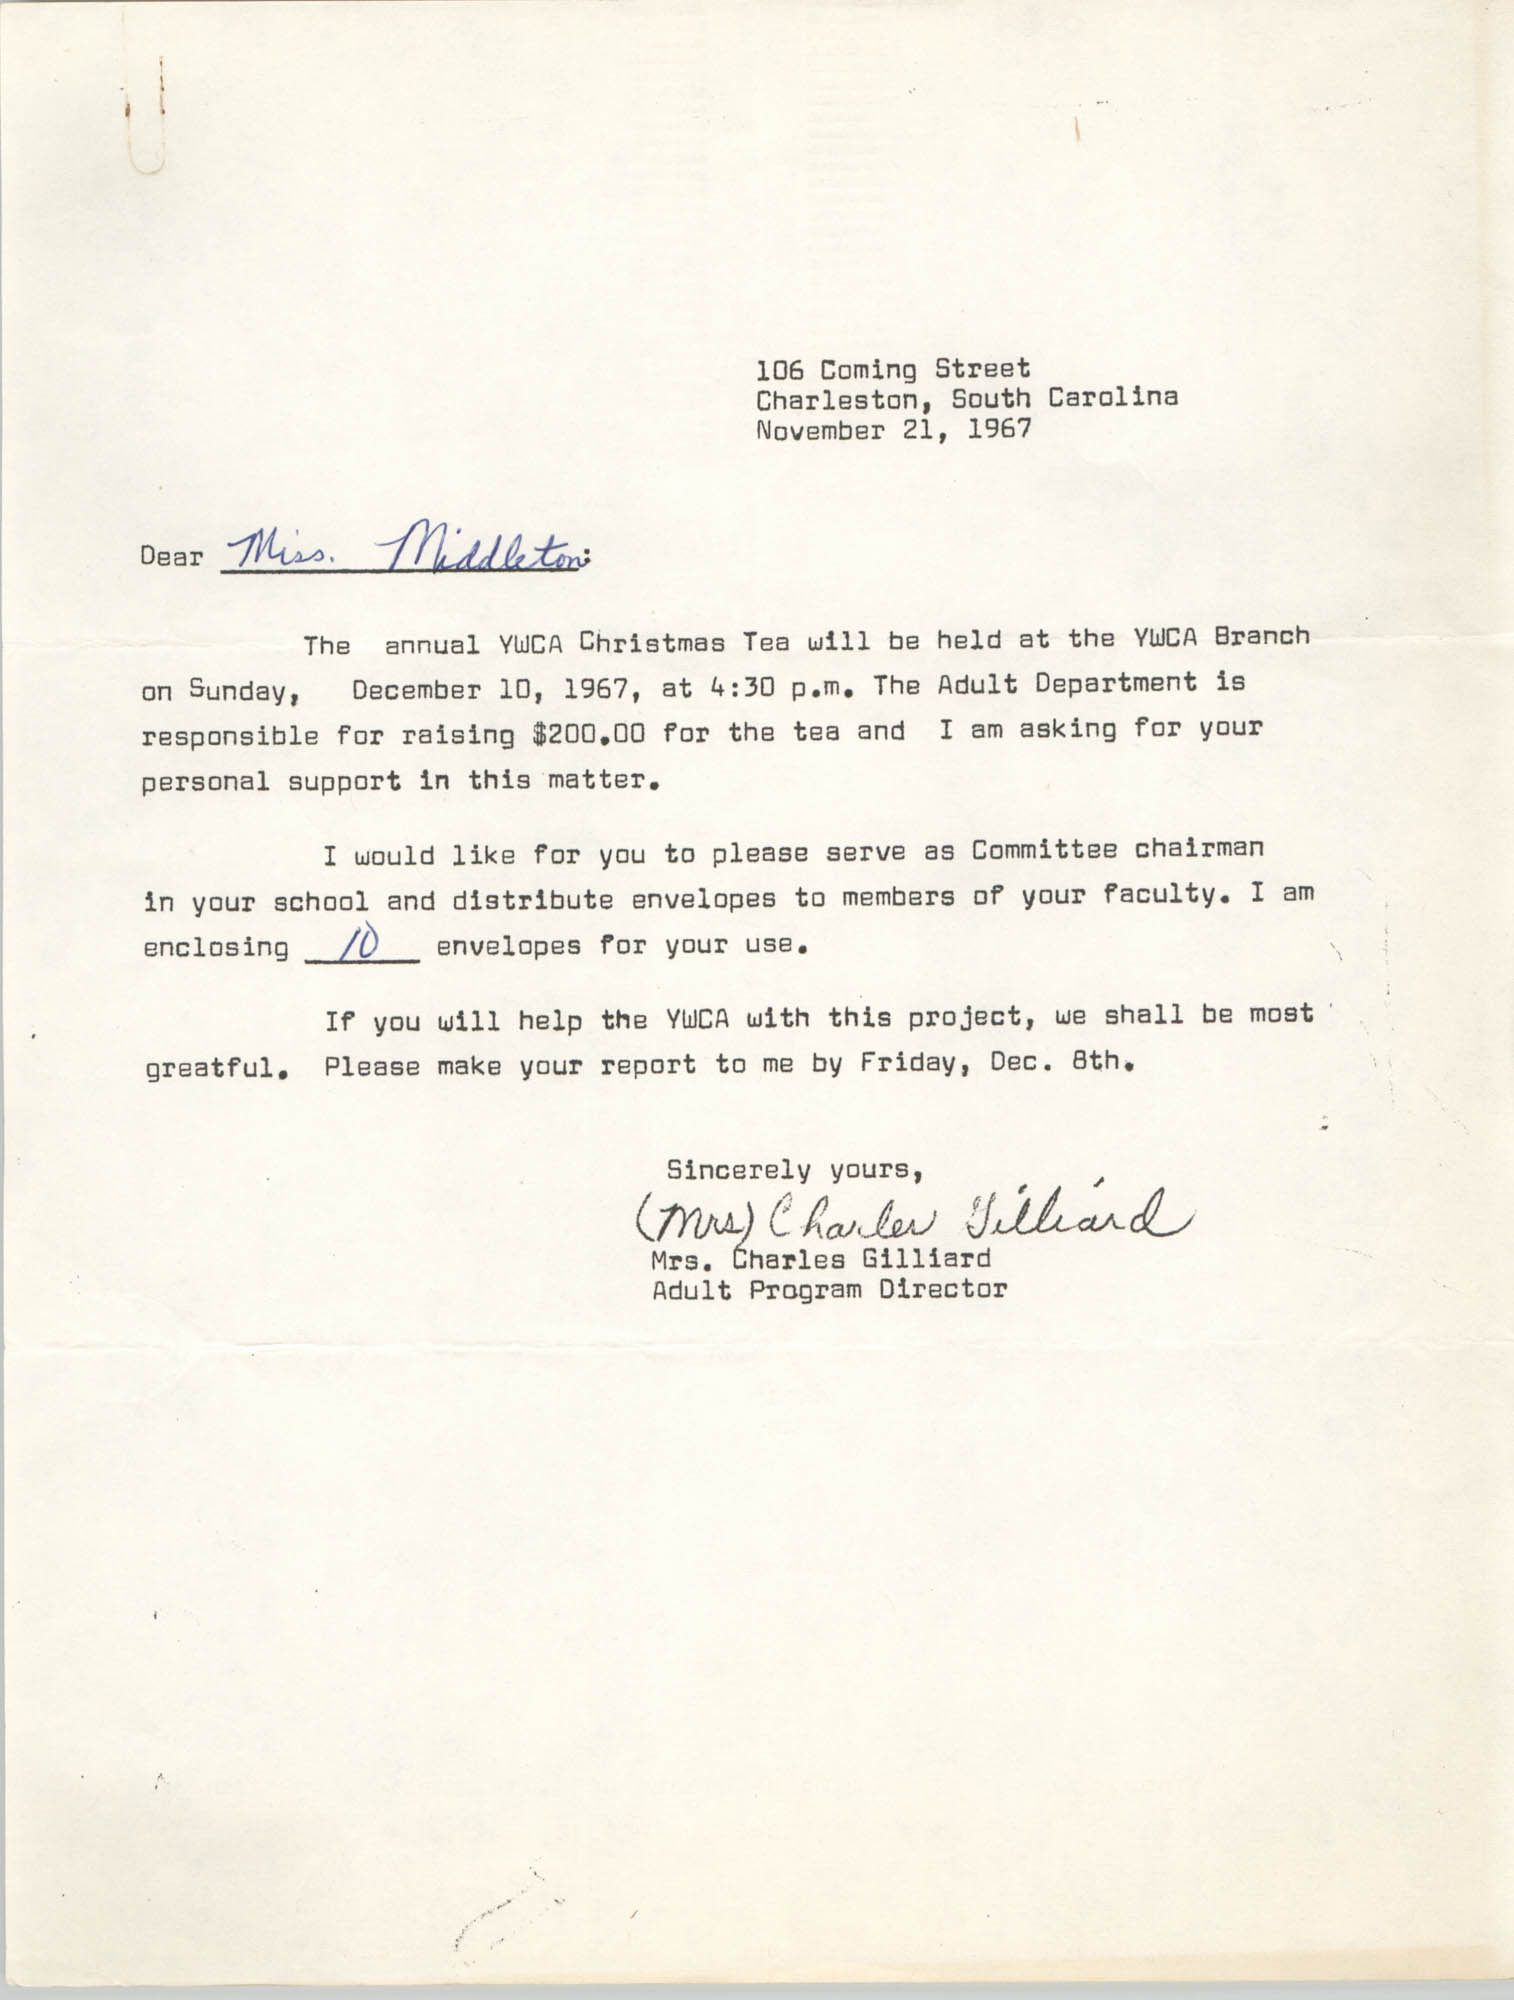 Letter from Mrs. Charles Gilliard to